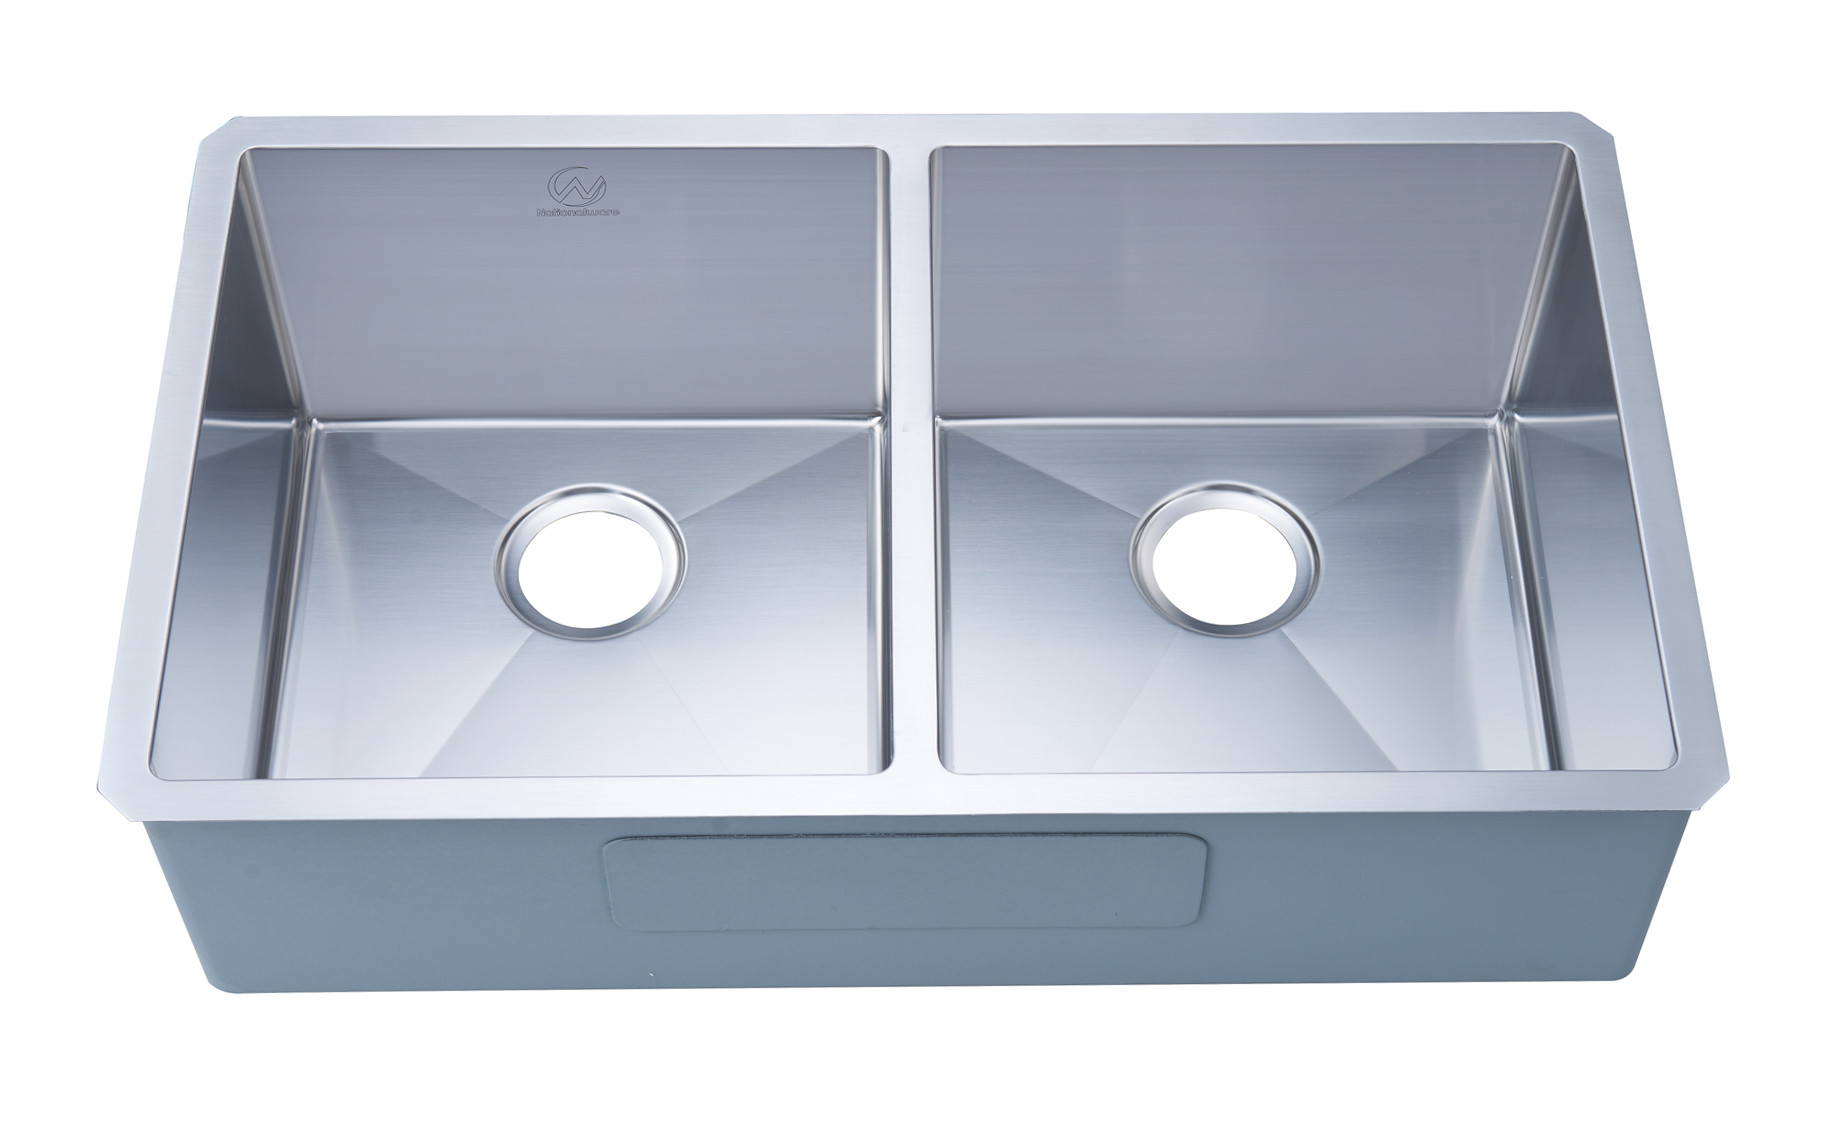 Stufurhome NW-3320D Undermount Stainless Steel 33 Inch Double Bowl Kitchen Sink